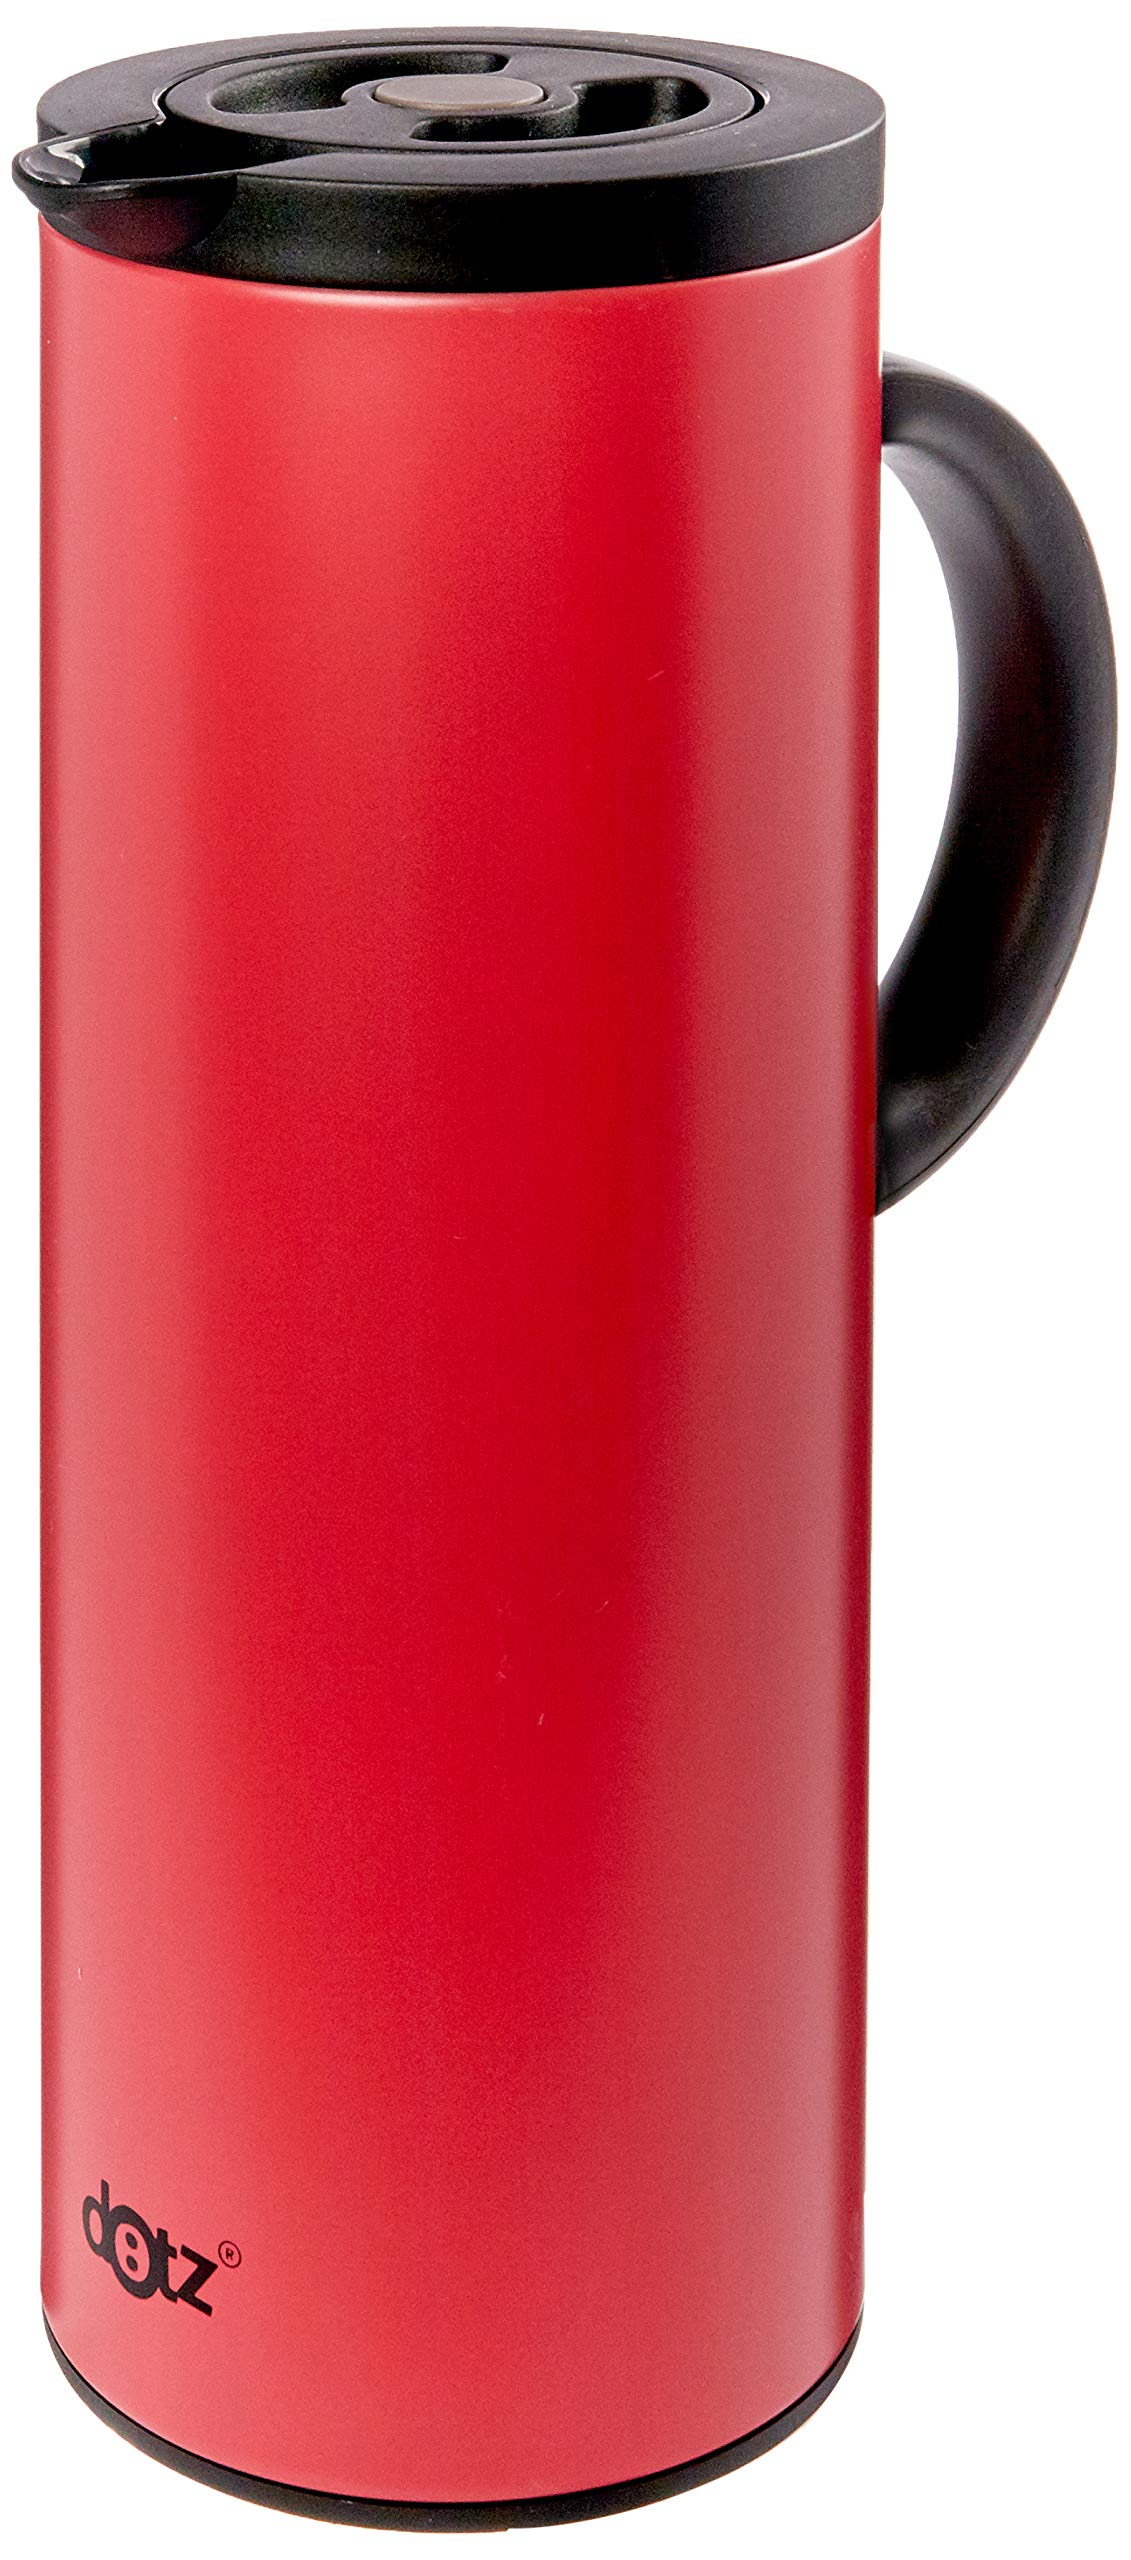 A'Domo DT-SIL-0047 Dotz Vacuum Flask with Glass Interior Body Red 1L, Silicone by A'Domo